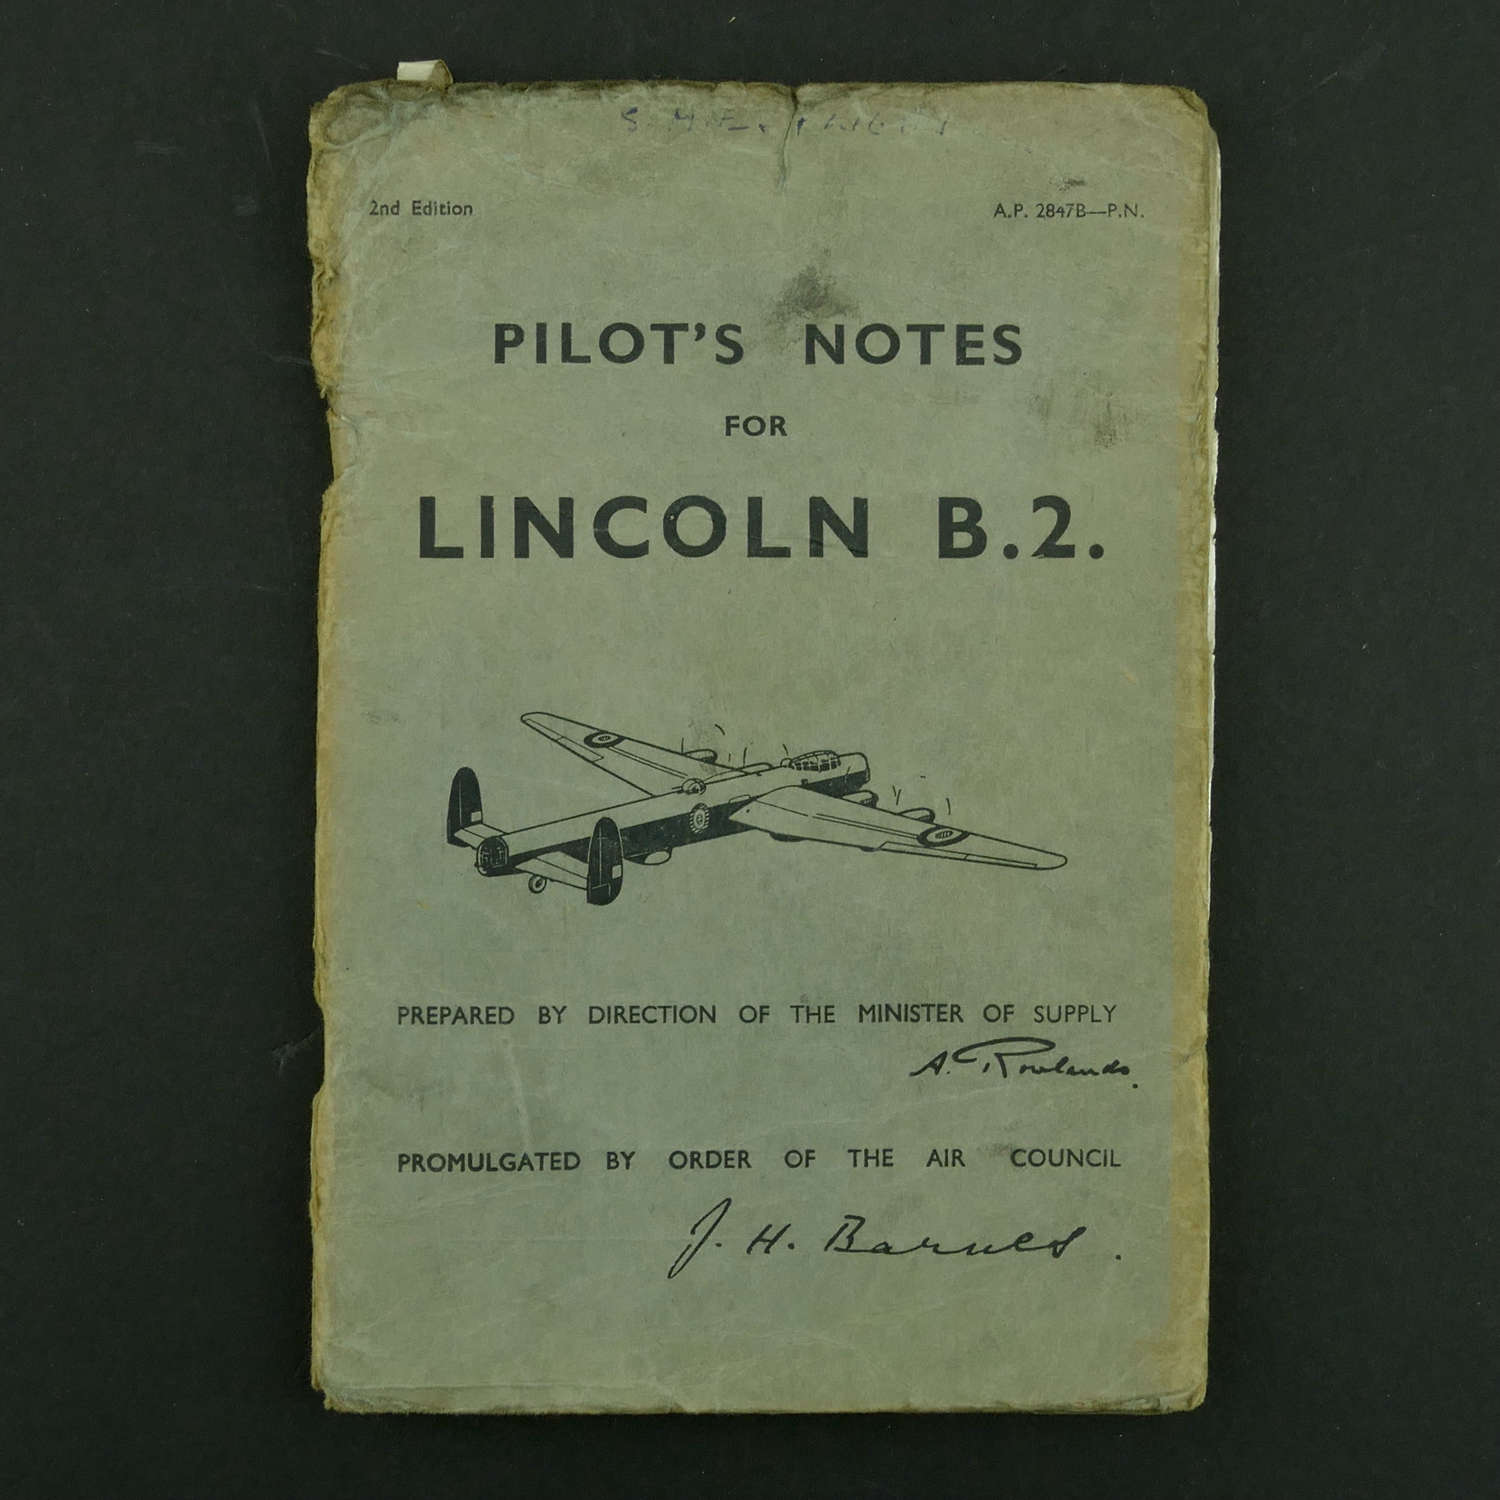 RAF Pilot's Notes, Lincoln B.2